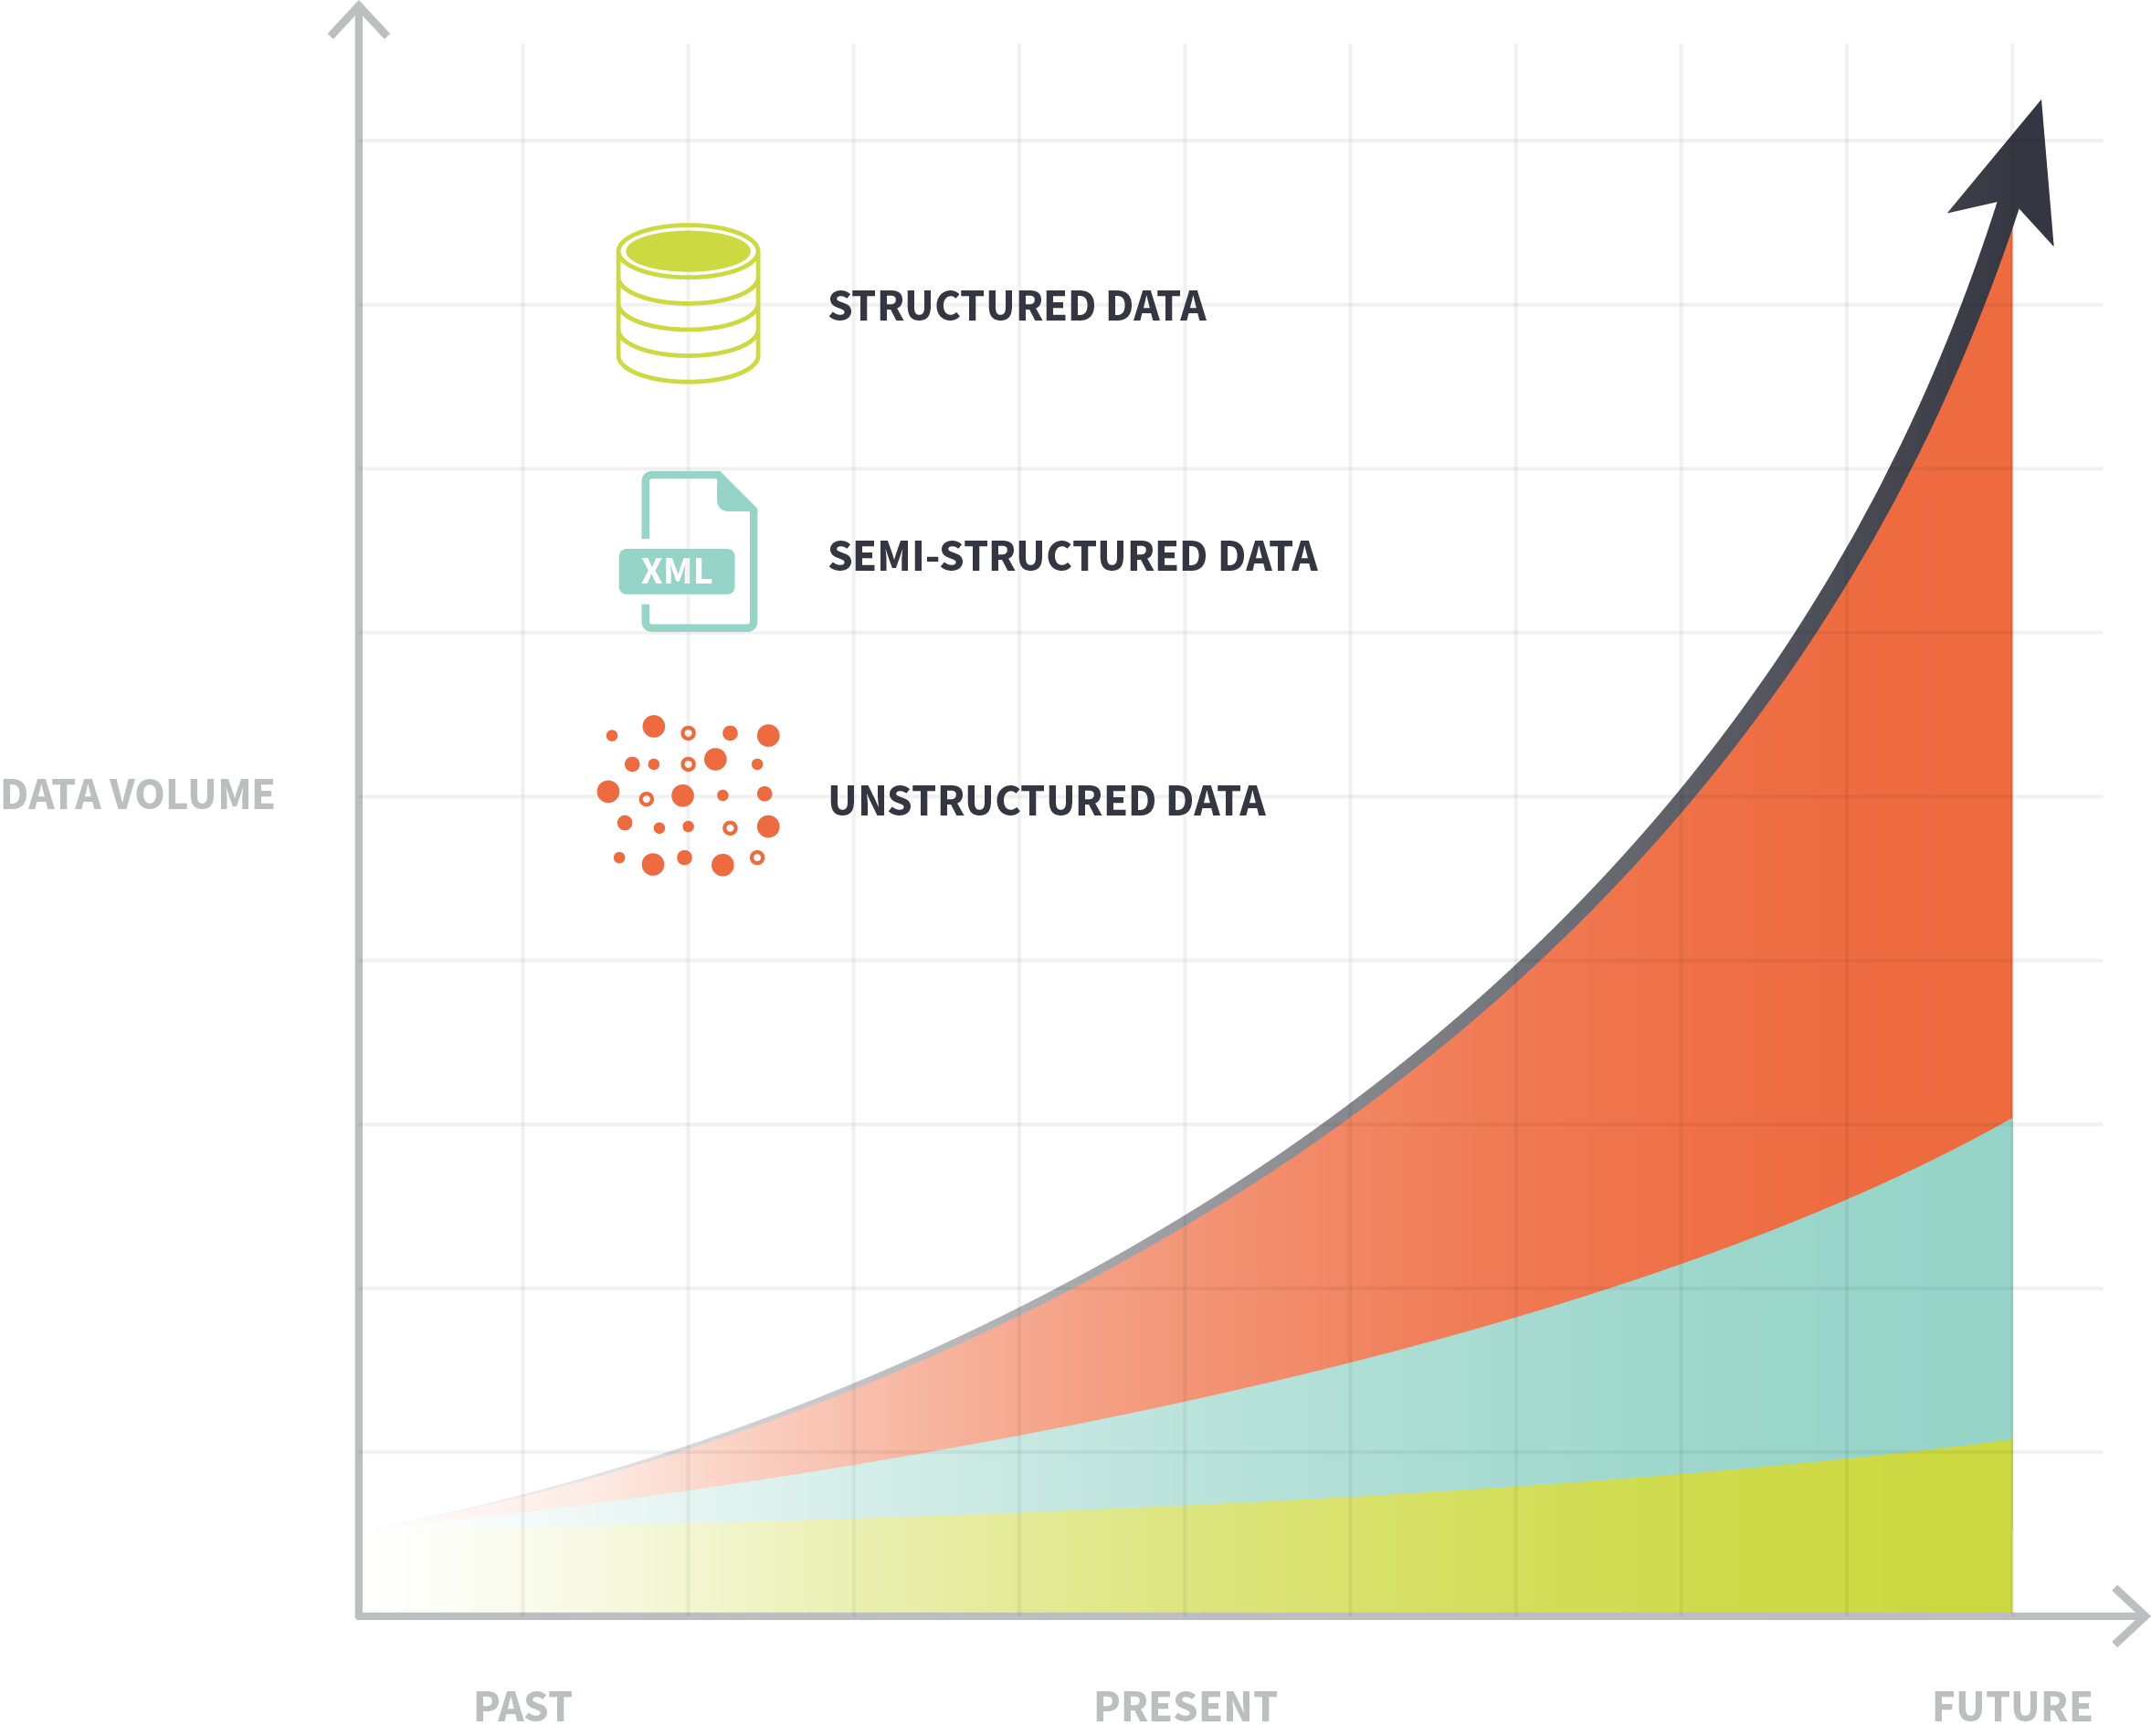 unstructured data growth problem